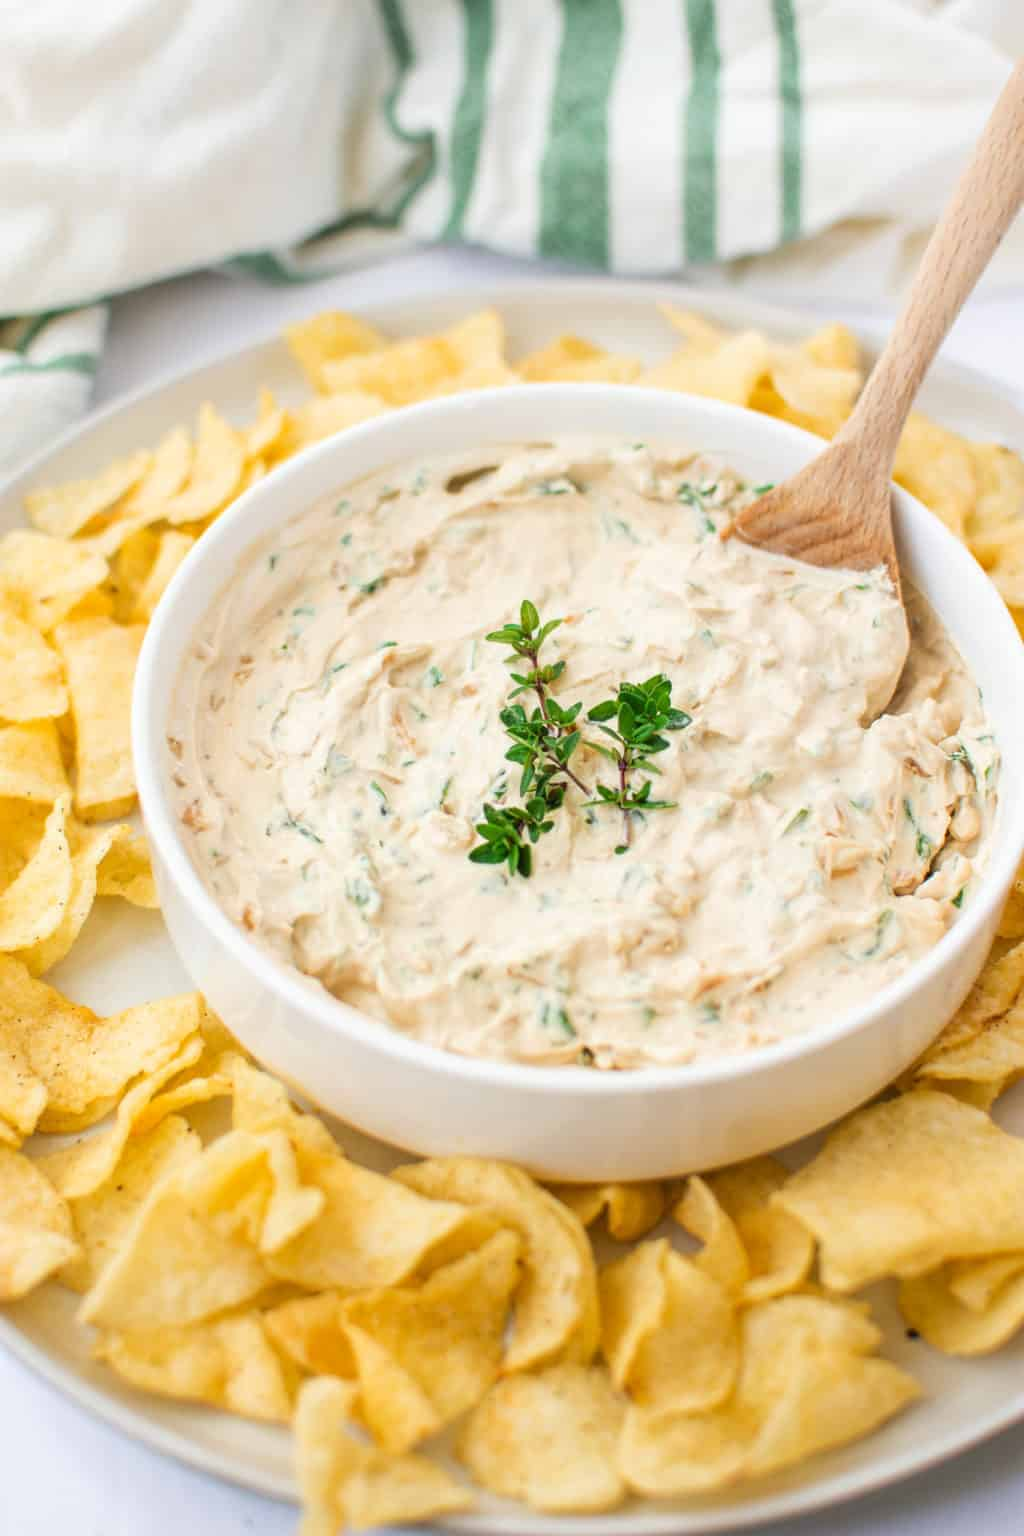 easy-healthy-french-onion-dip-gluten-free | French Onion Dip | Gluten Free French Onion Dip | Healthy French Onion Dip | Easy Appetizer Dip | Healthy Appetizer Dip | Gluten Free Appetizer | Recipes Using Cape Cod Potato Chips | Holiday Appetizers || The Butter Half #glutenfreeappetizer #glutenfree #thebutterhalf